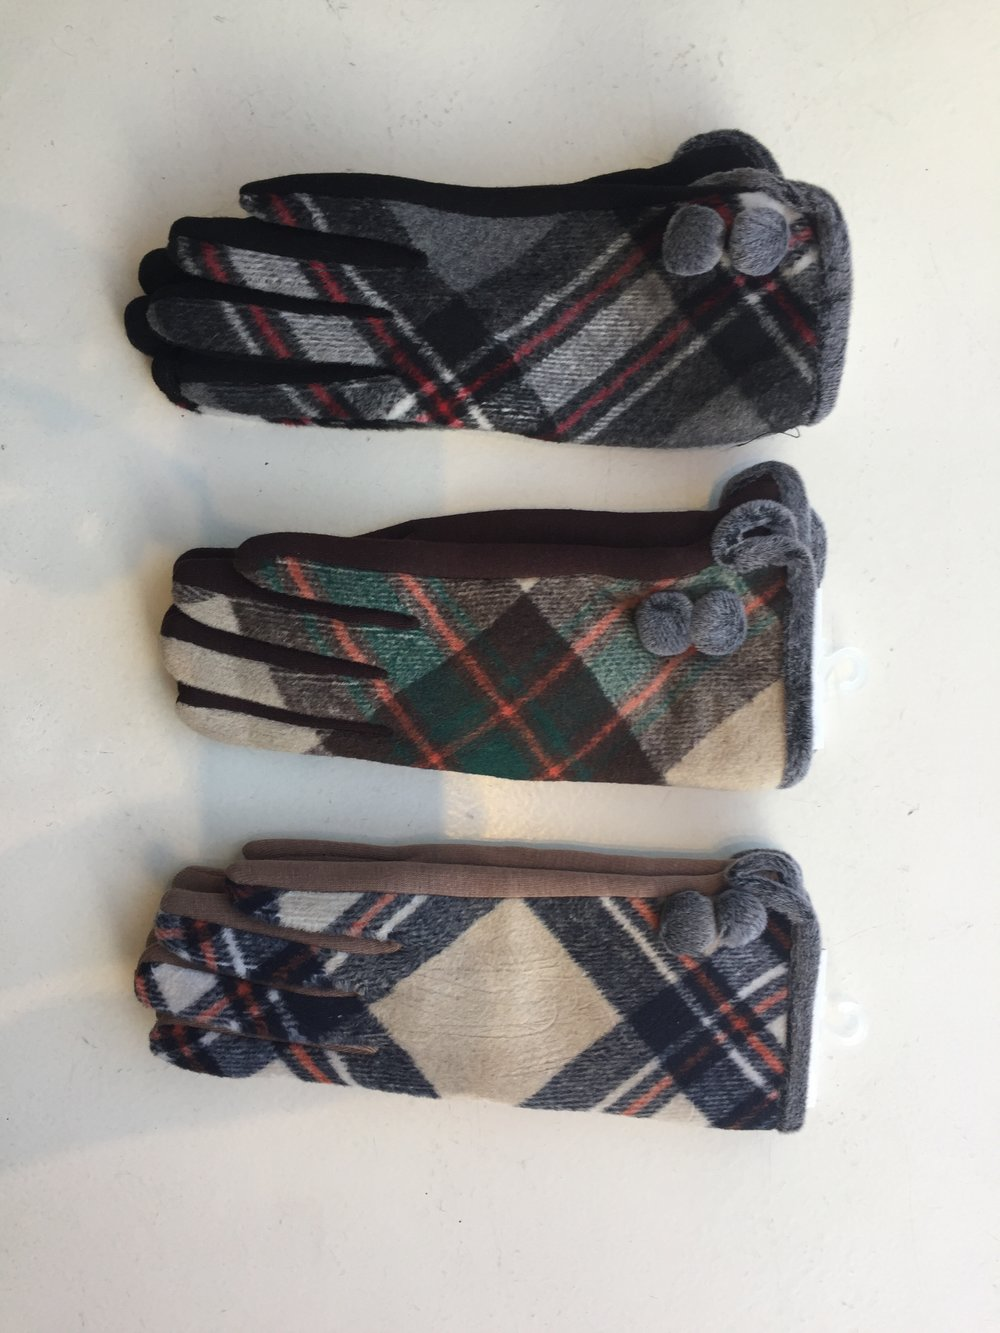 New Plaid Gloves!